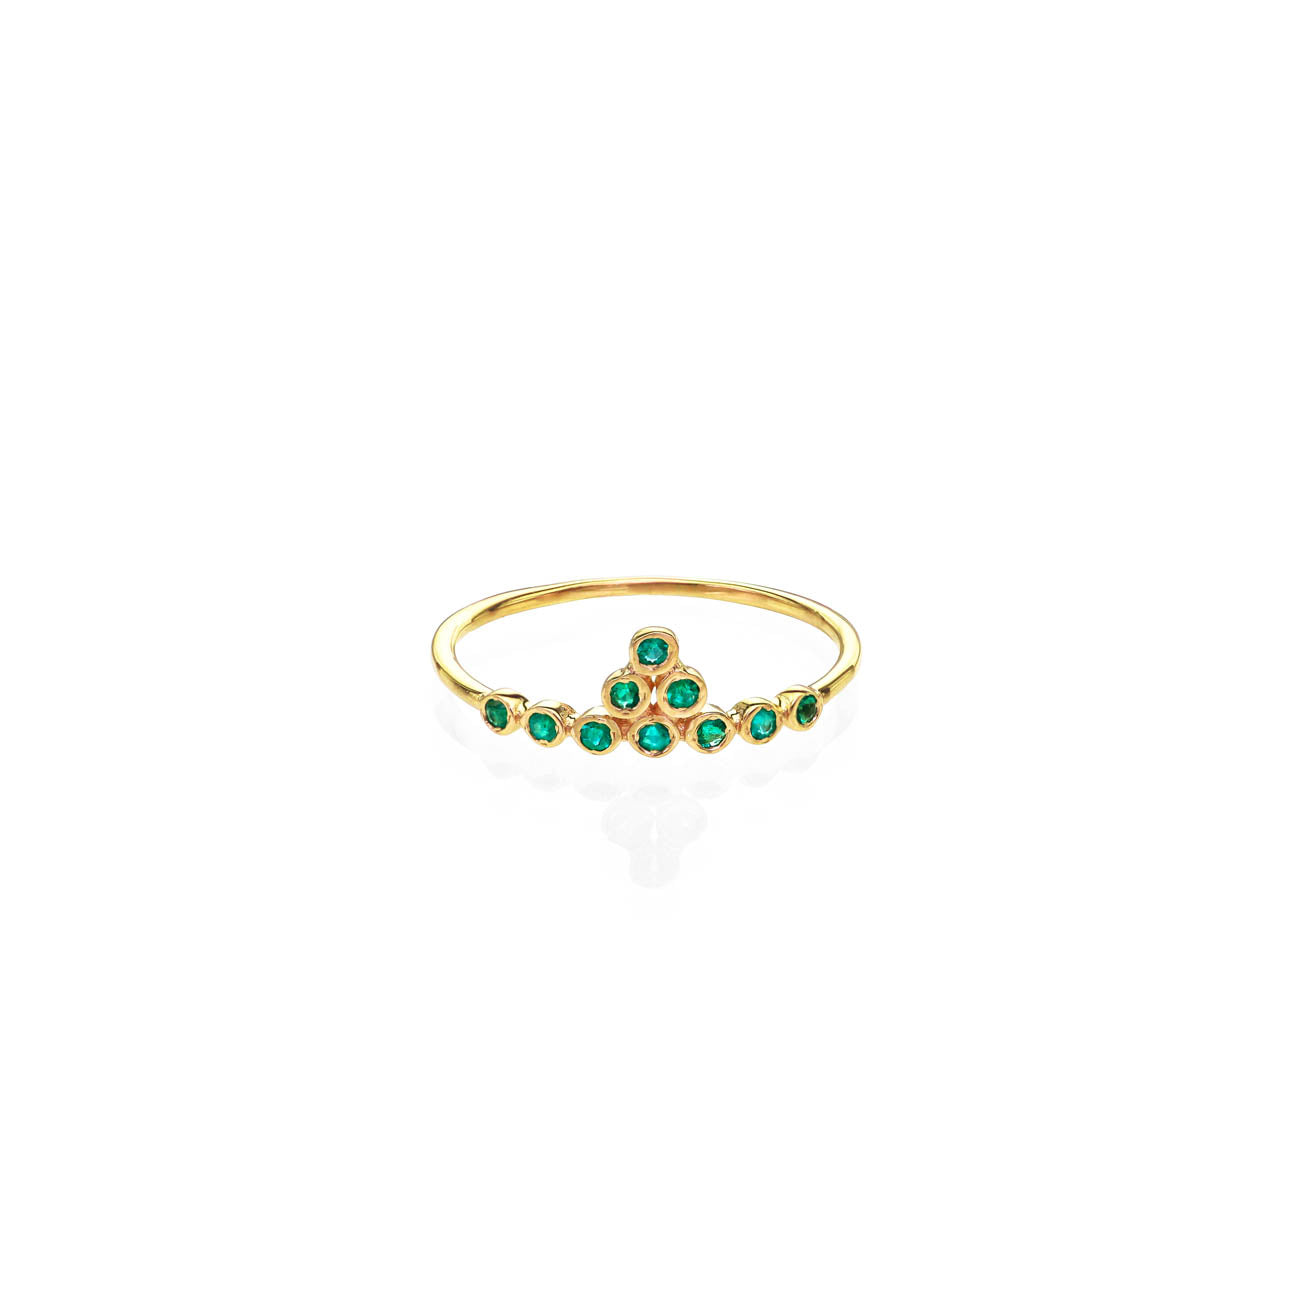 Image of Emerald & Gold Tiara Ring